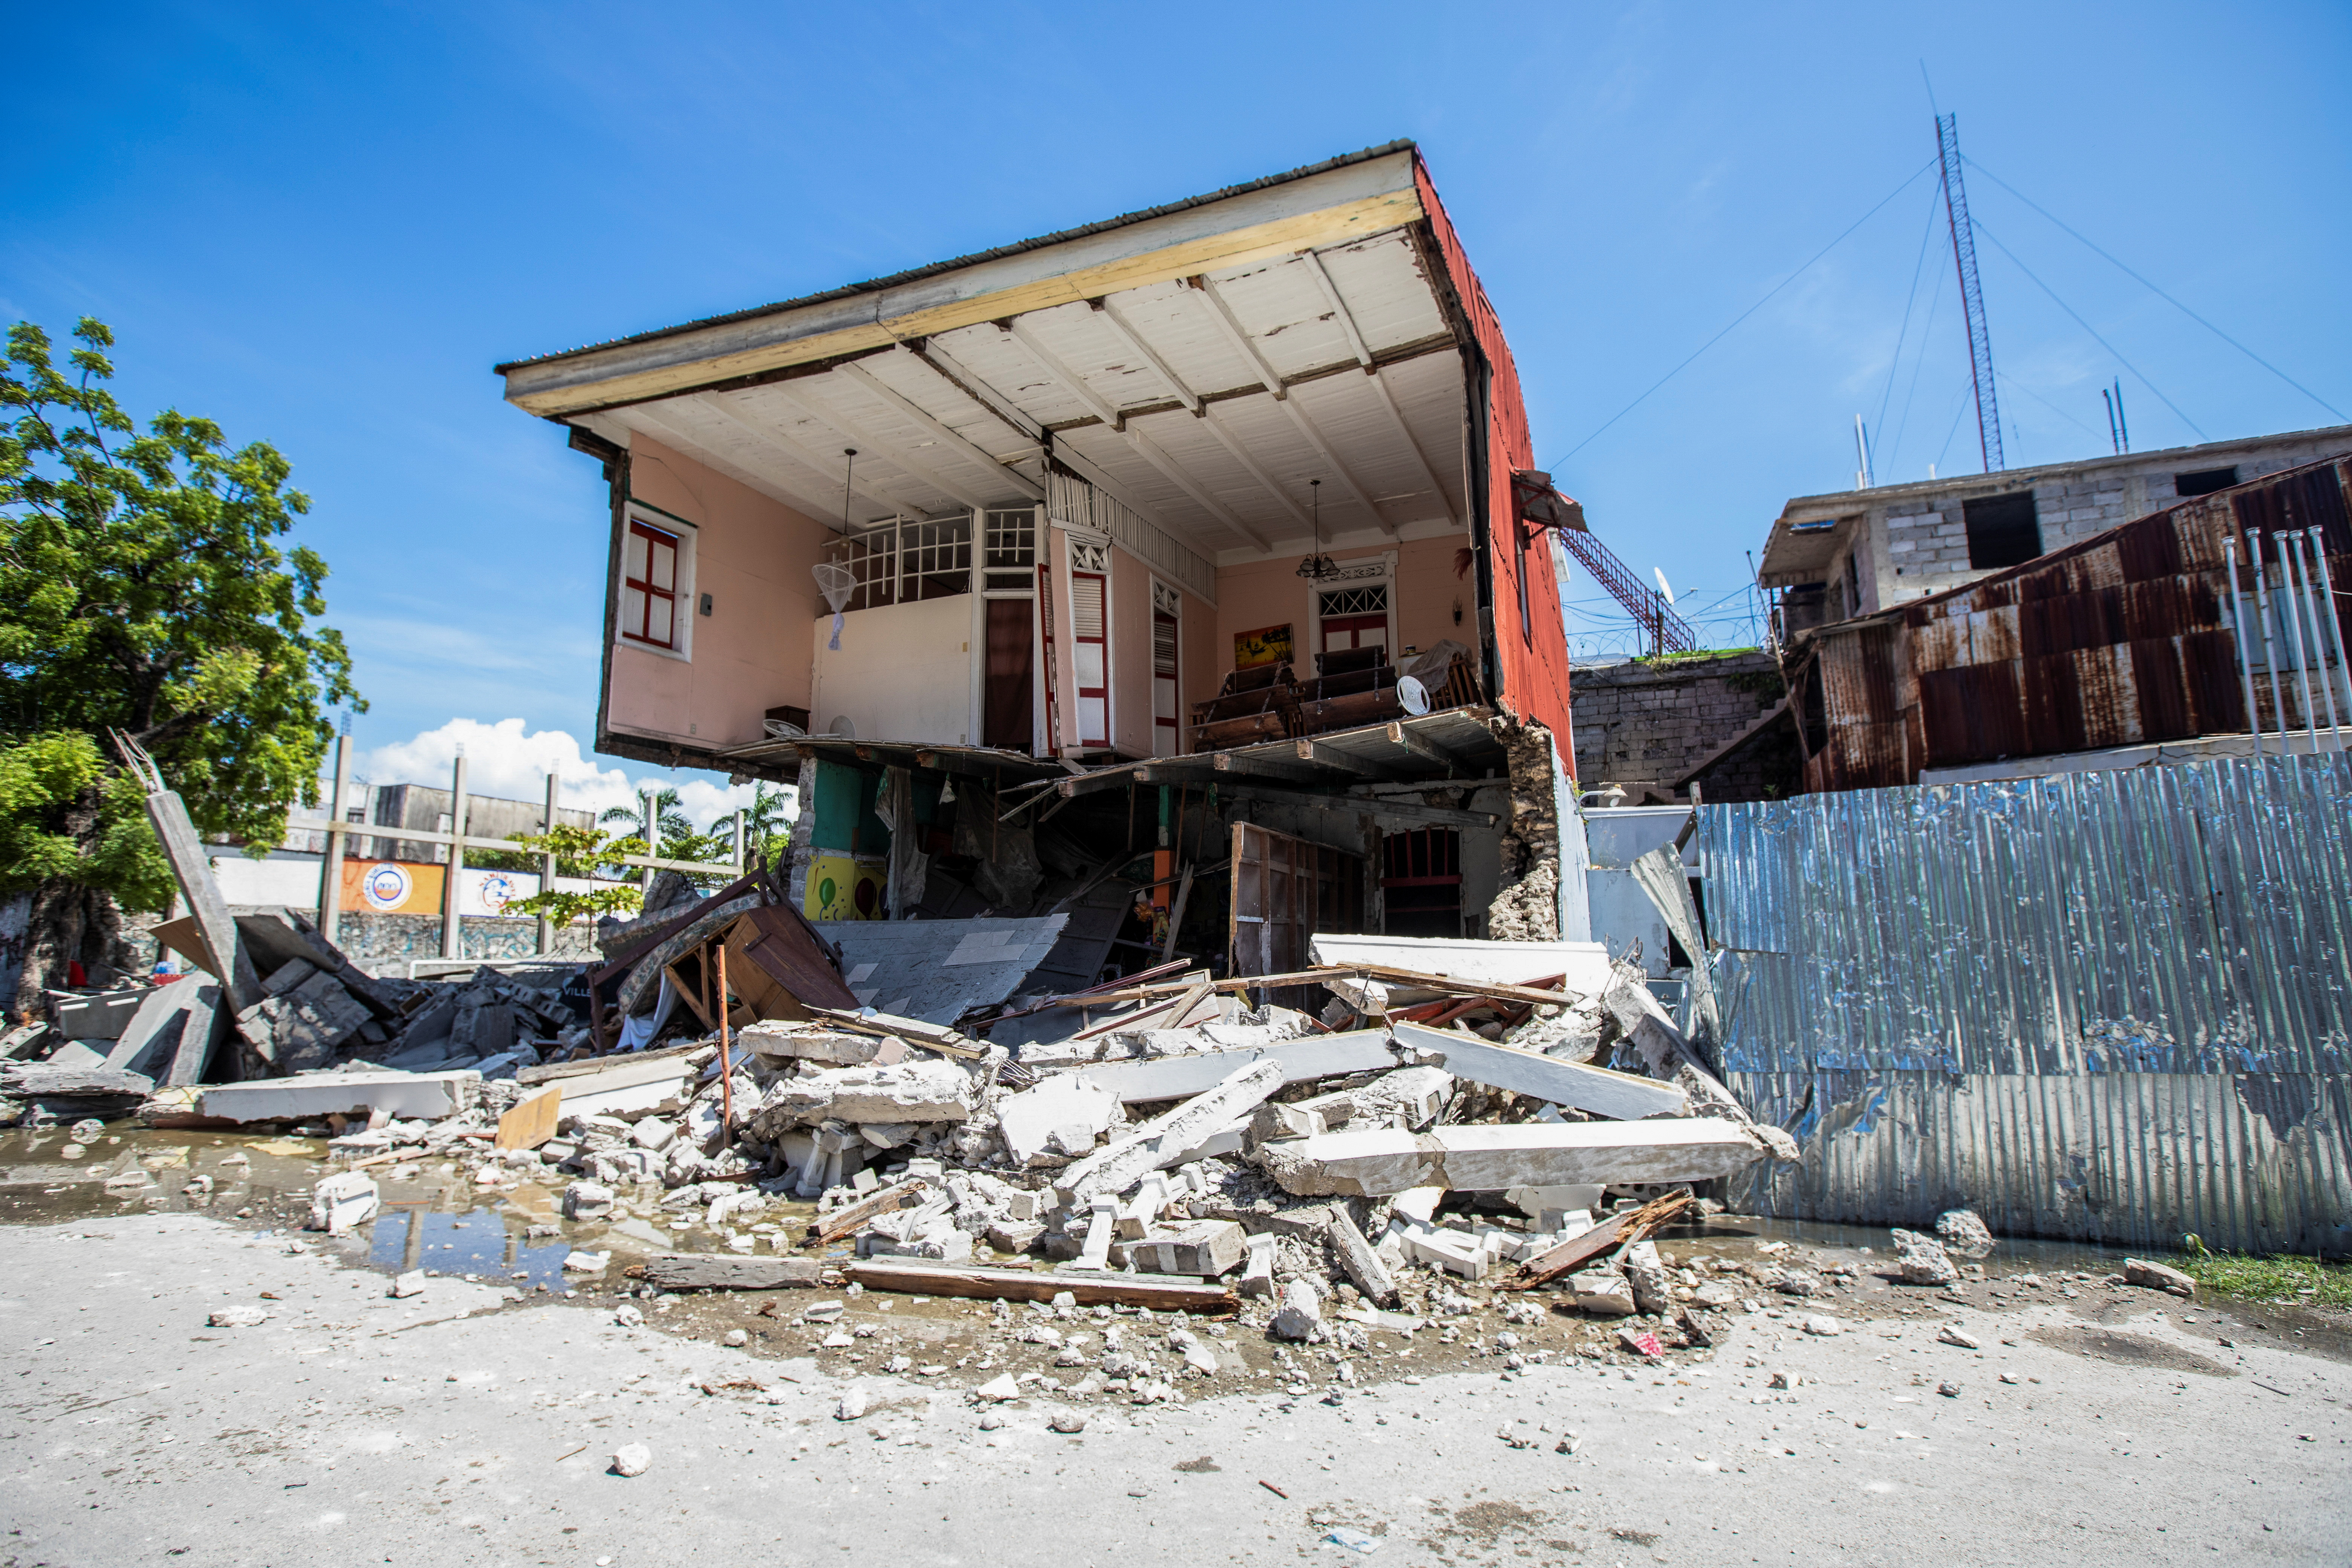 A view shows a house destroyed following a 7.2 magnitude earthquake in Les Cayes, Haiti August 14, 2021. REUTERS/Ralph Tedy Erol NO RESALES. NO ARCHIVES